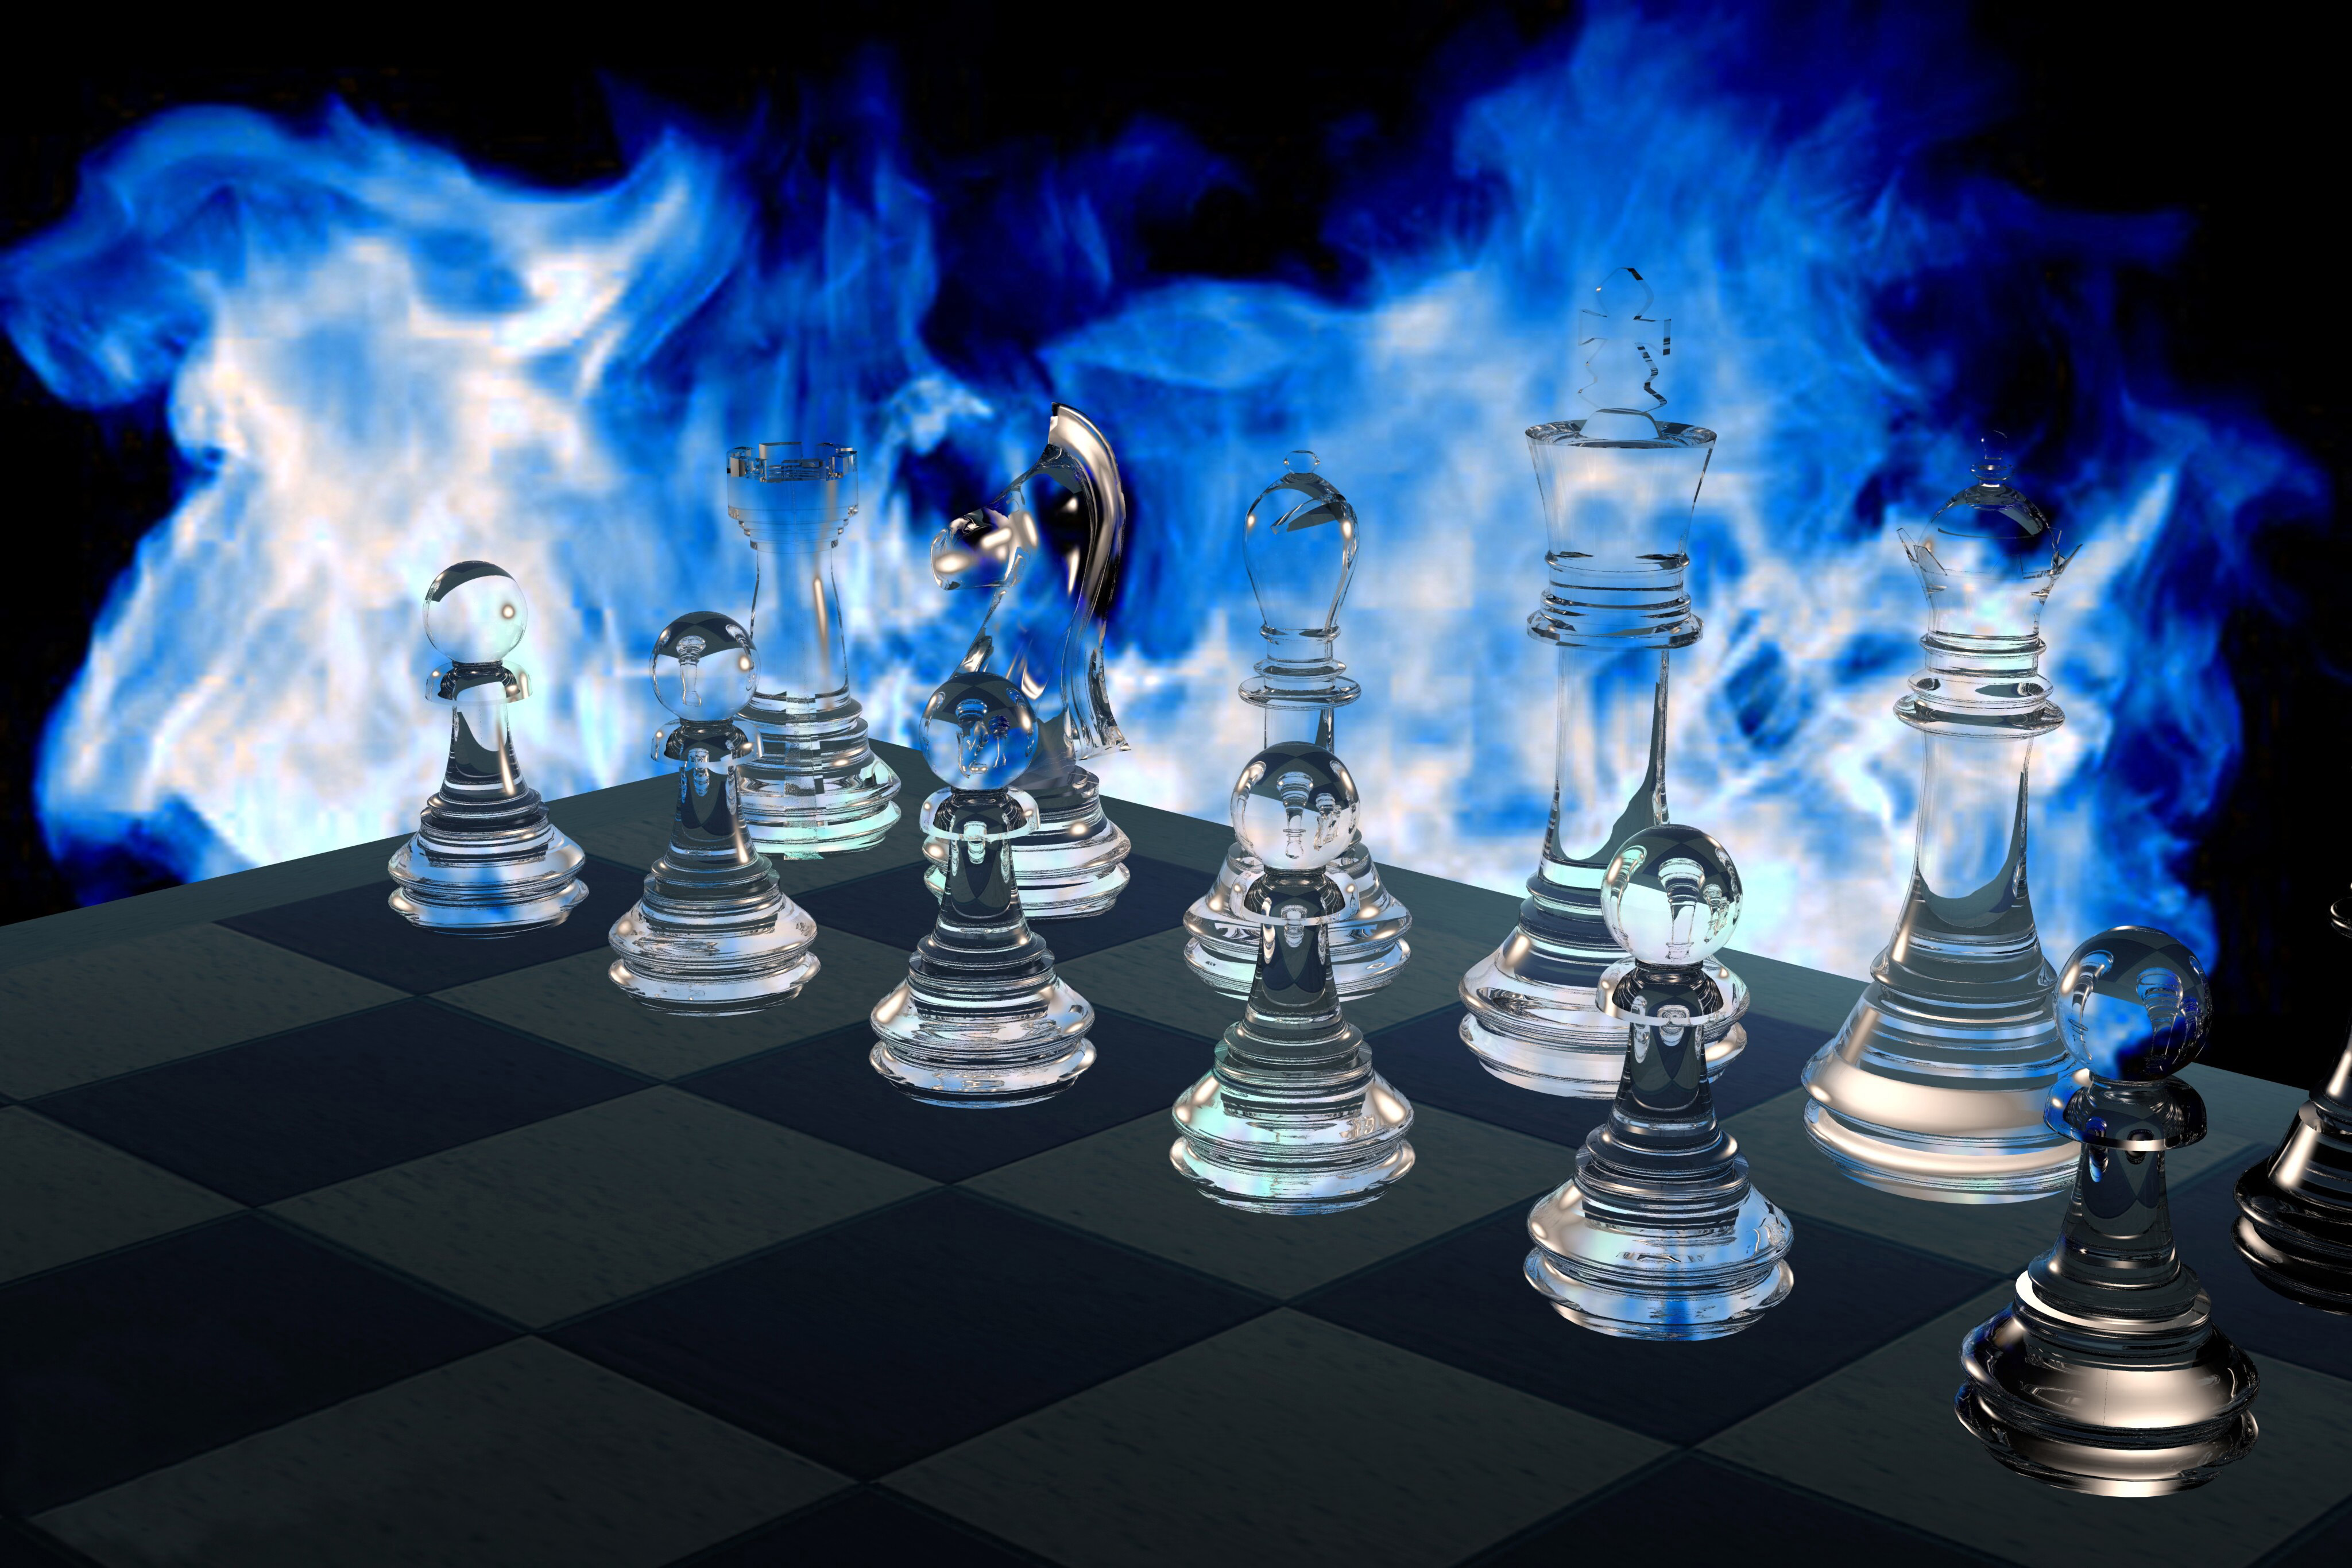 Chess hd backgrounds pictures images chess hd background voltagebd Choice Image